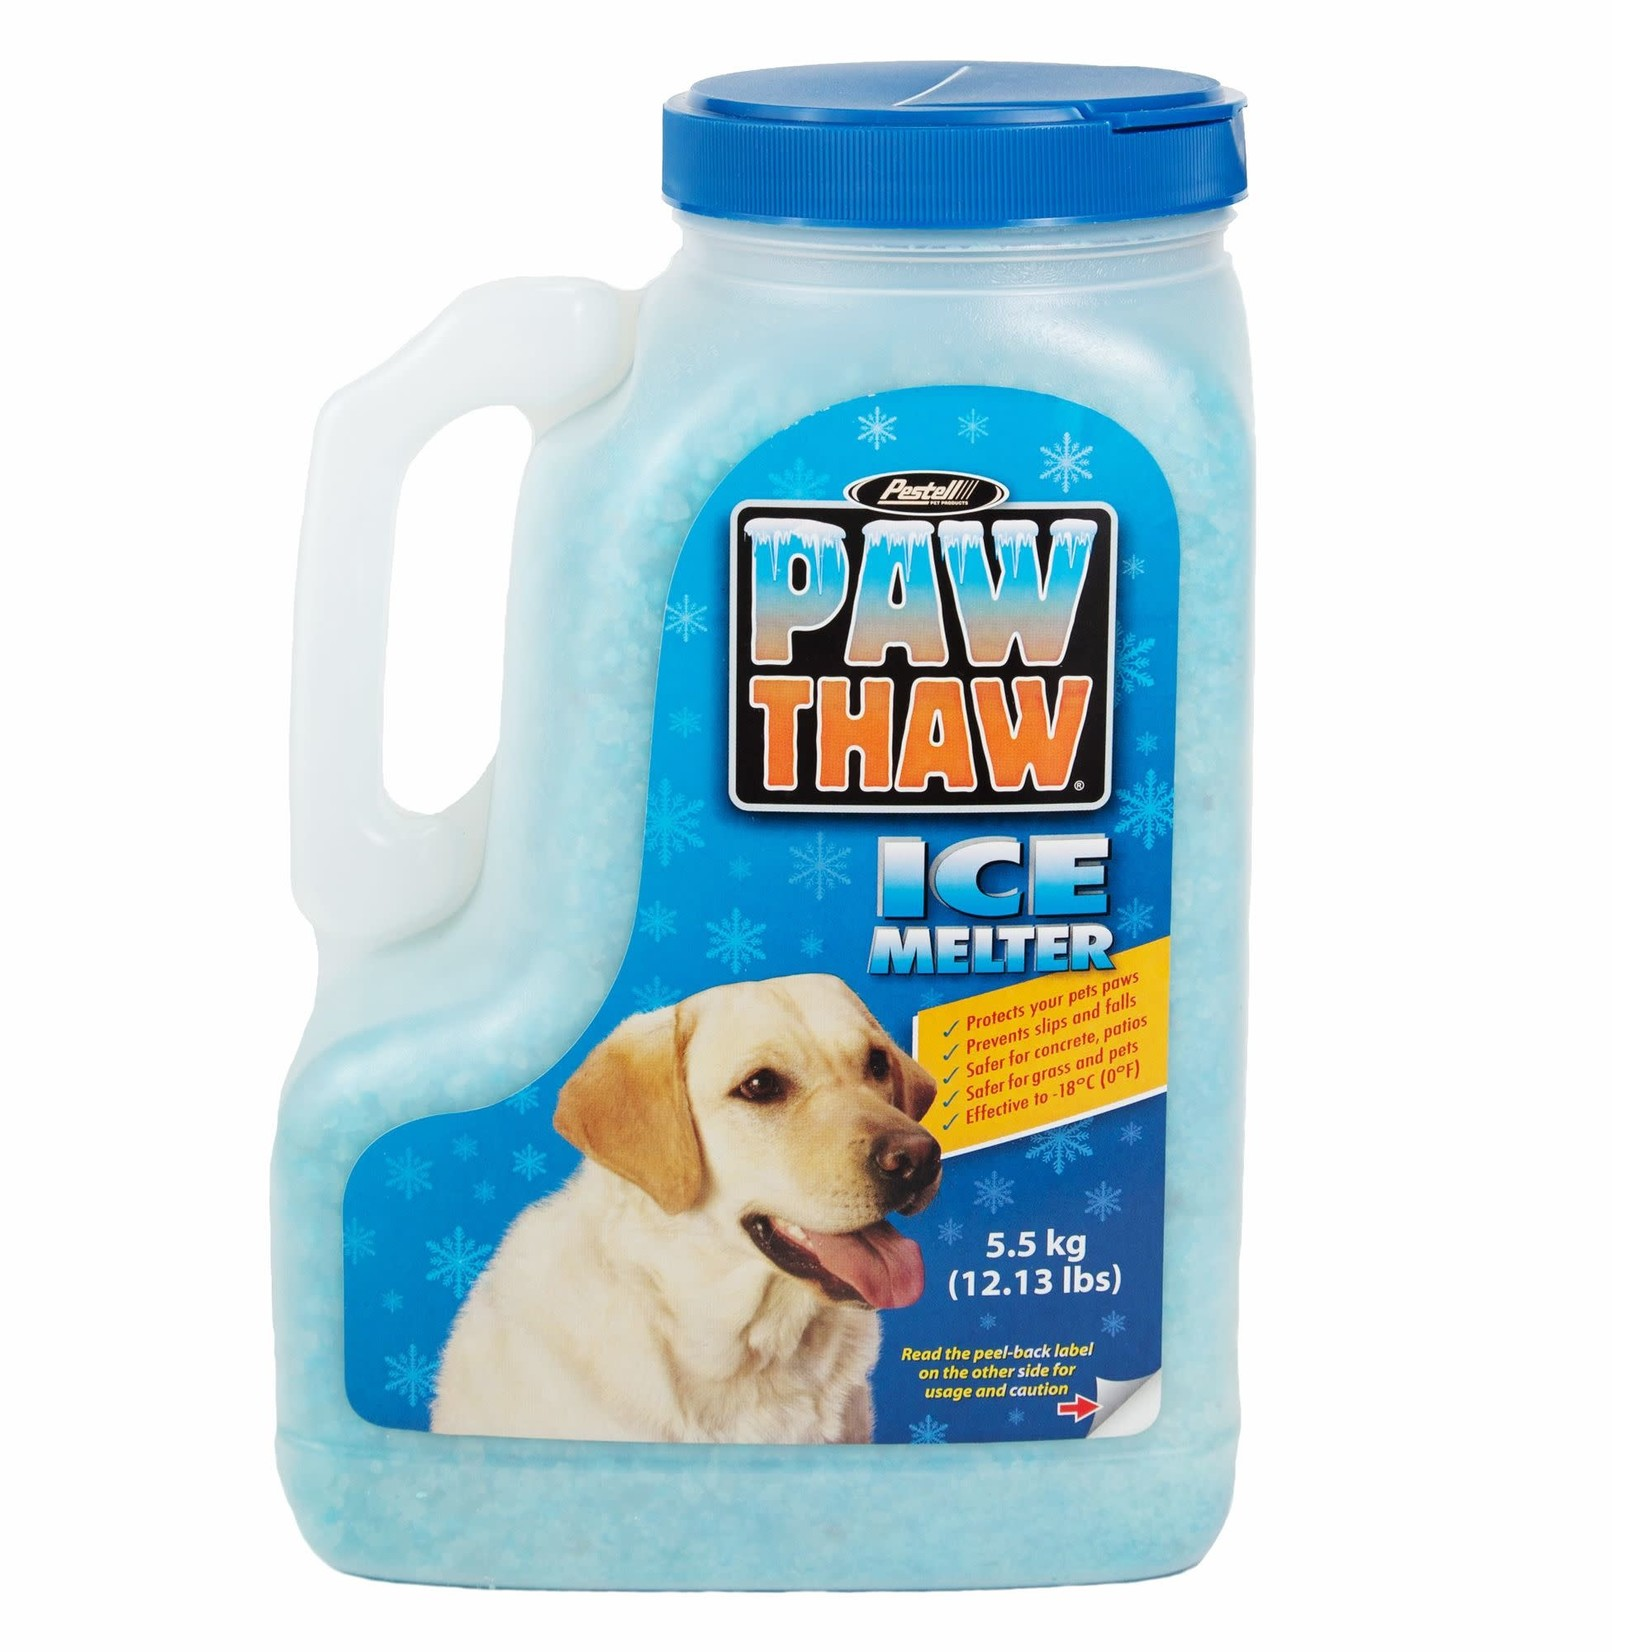 Pestell Paw Thaw Ice Melter Jug 12#